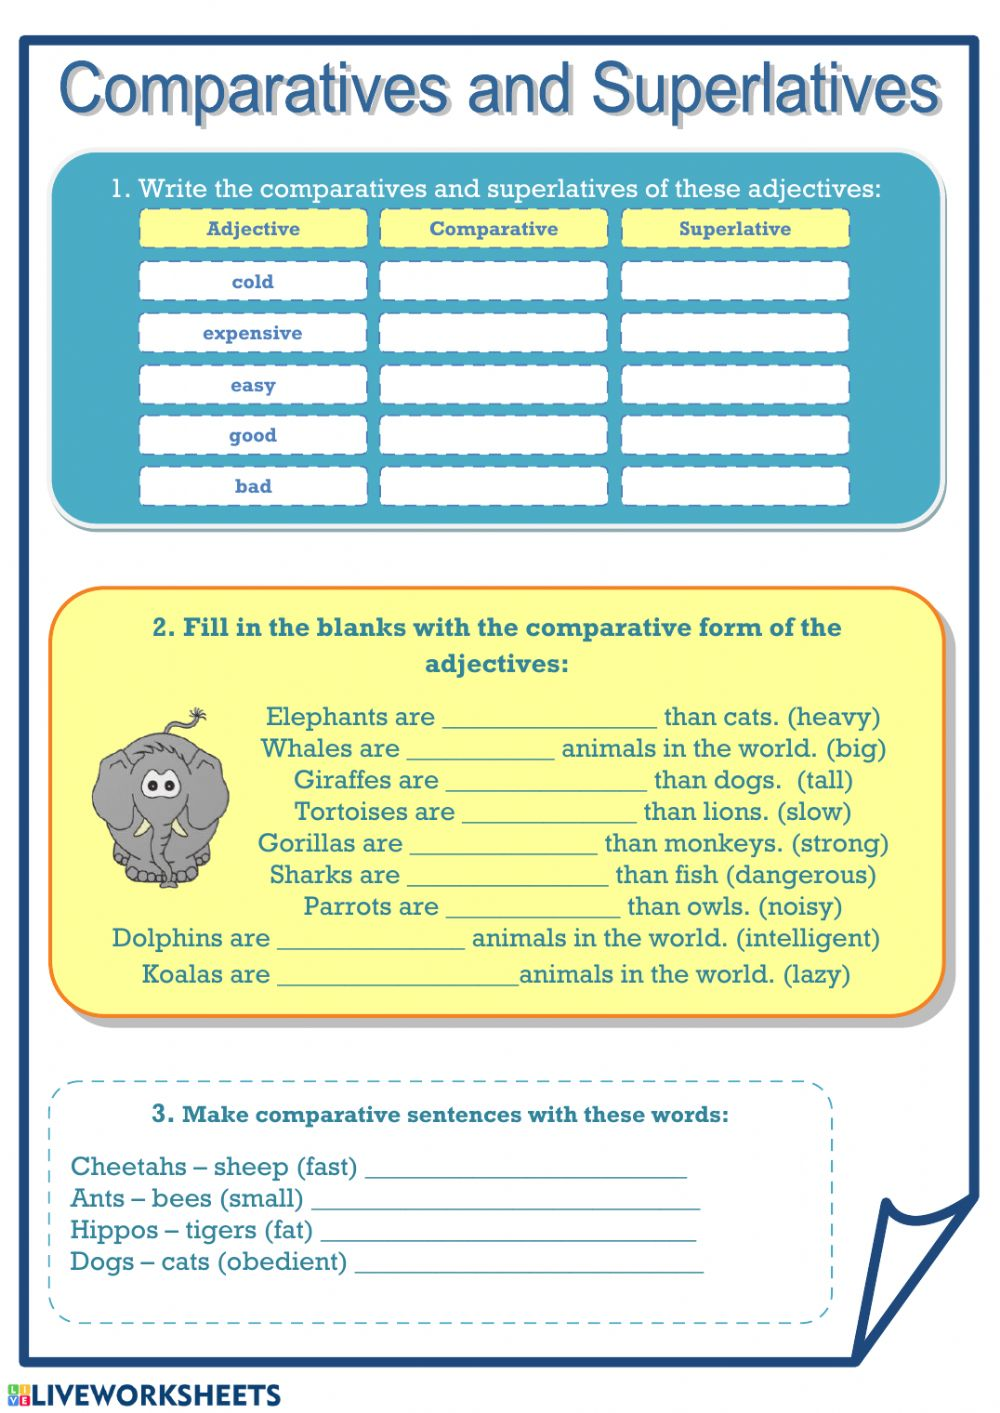 906051408448033001 Worksheets With Comparative And Superlative Adjectives on 3rd grade, for hard,